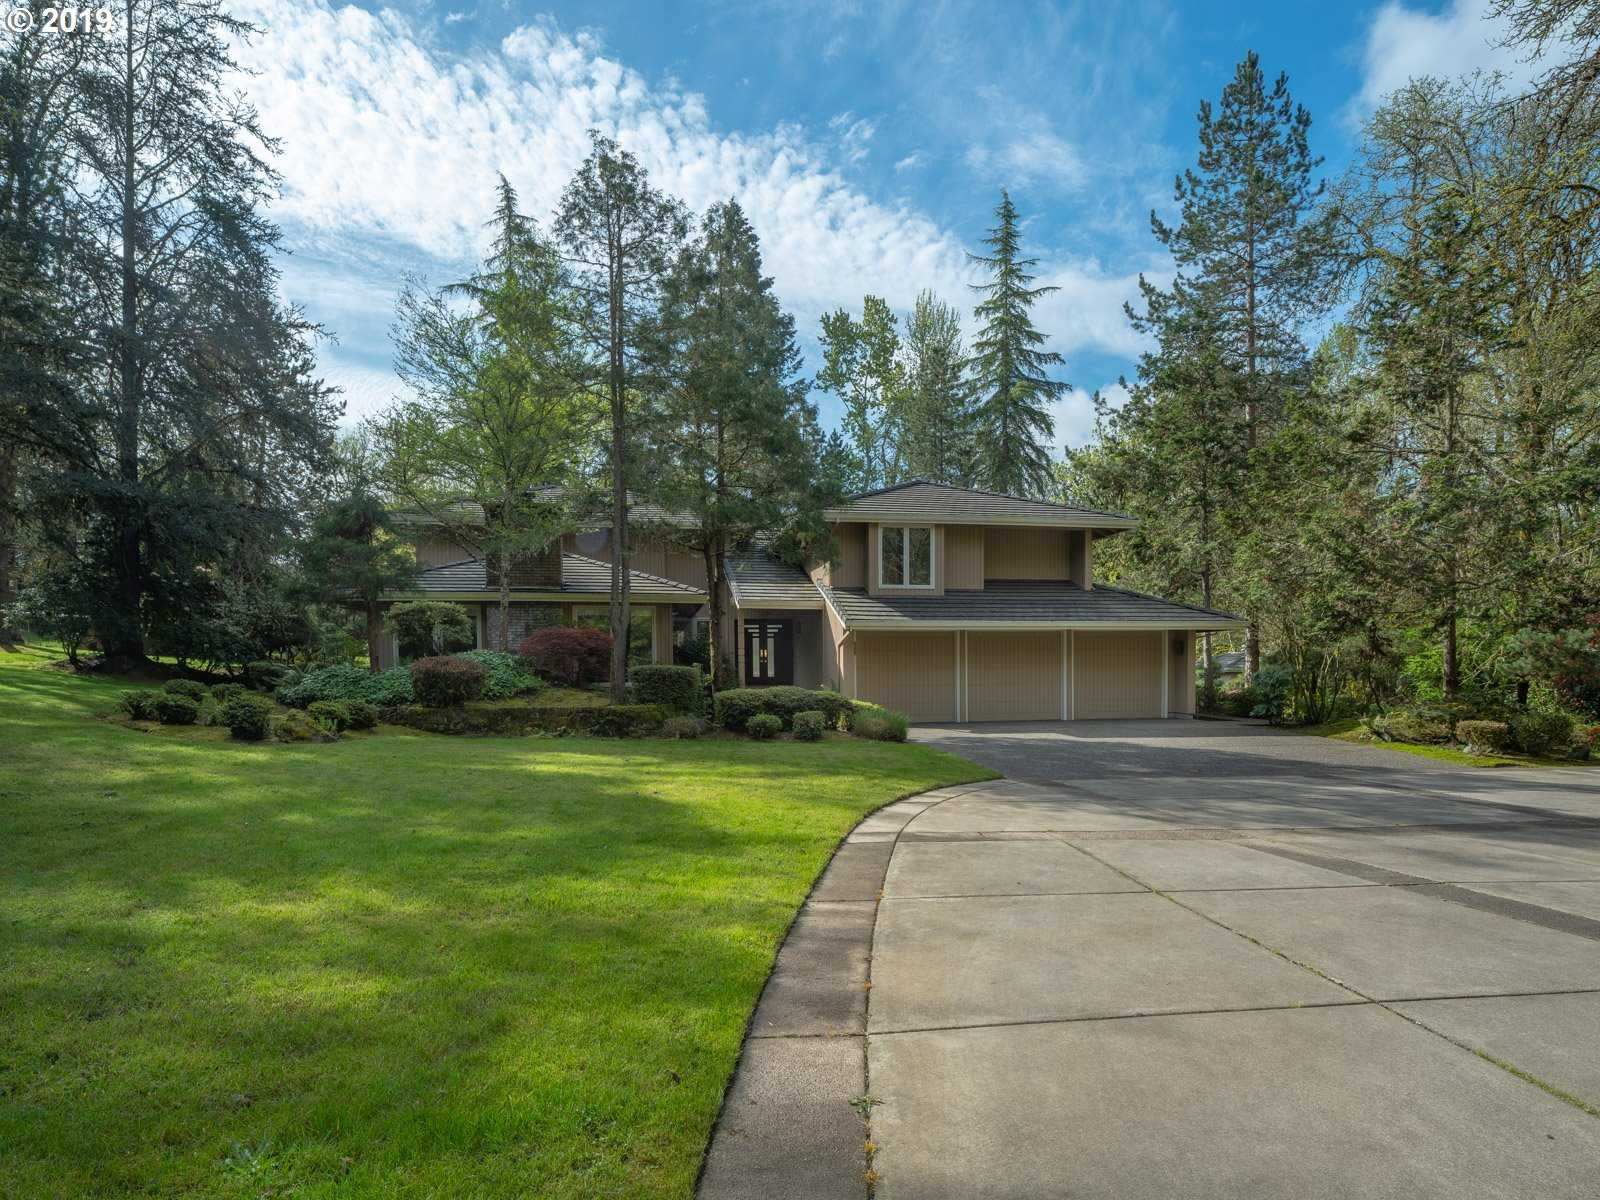 $1,295,000 - 3Br/3Ba -  for Sale in Ashdown Woods, West Linn